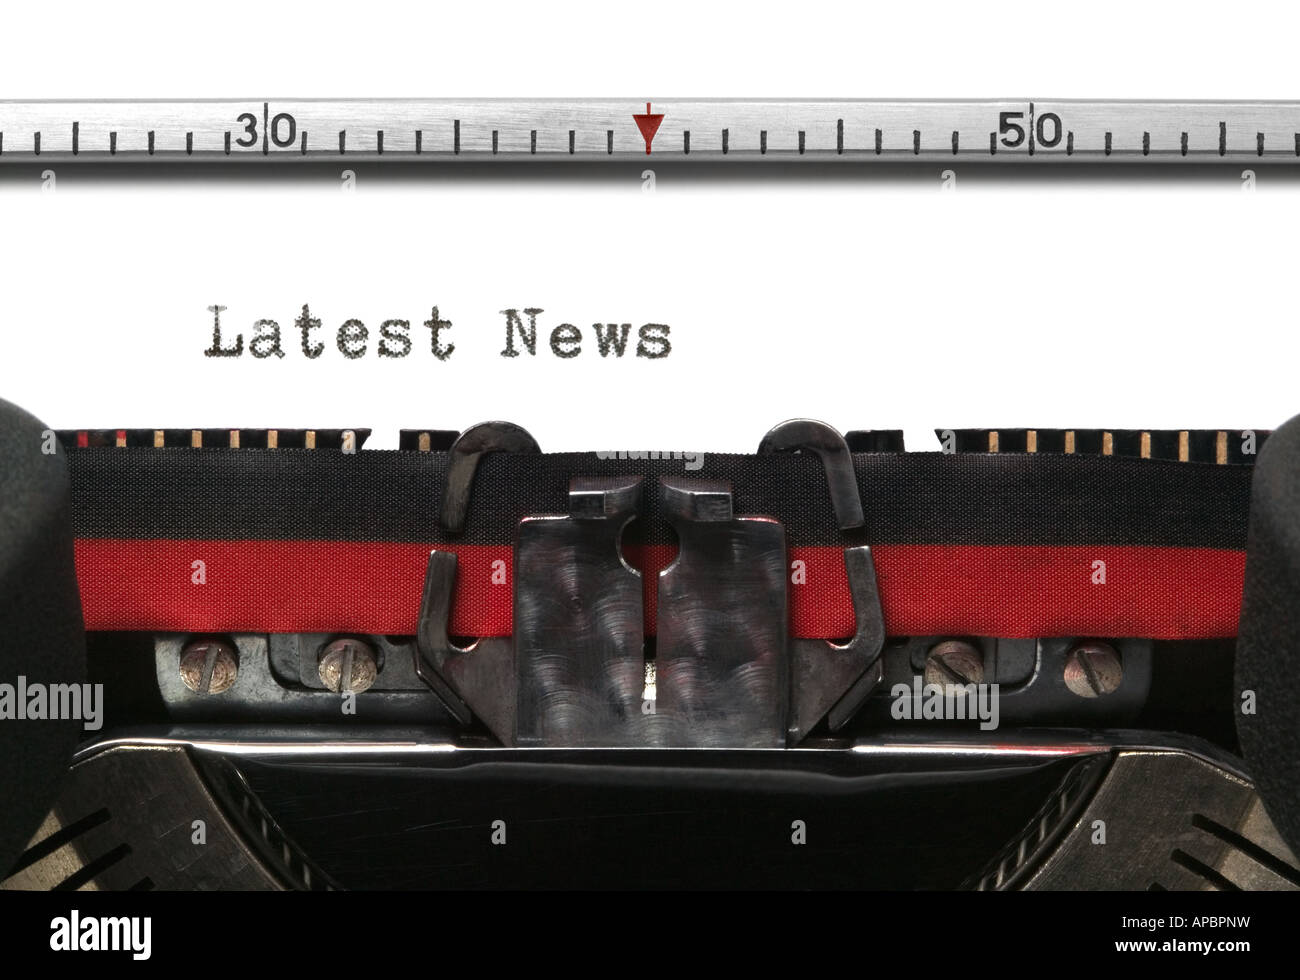 Latest News typedr on an old typewriter - Stock Image